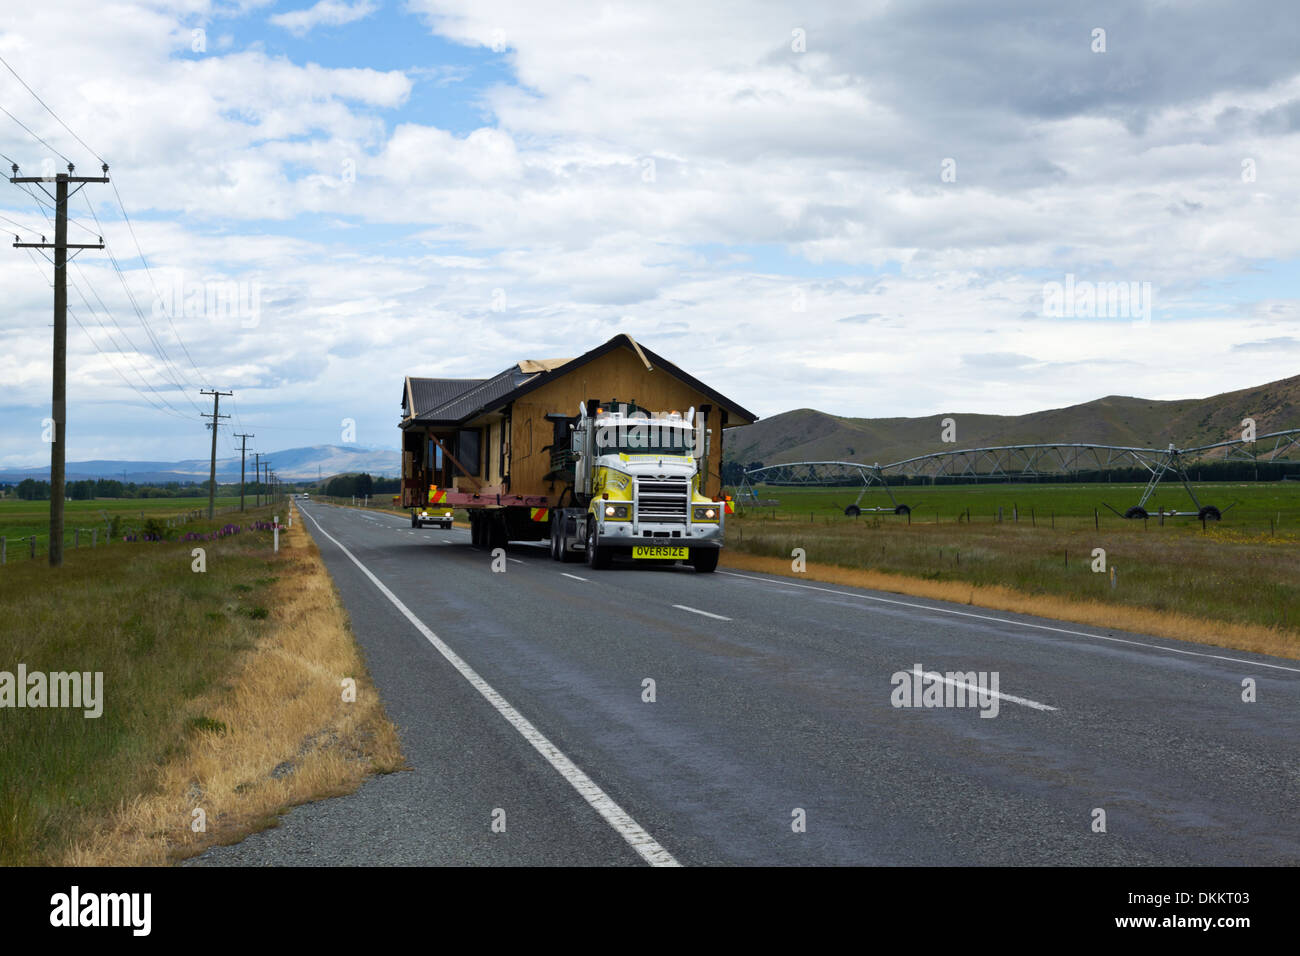 A new house is delivered on the back of this truck on the South Island of New Zealand Stock Photo